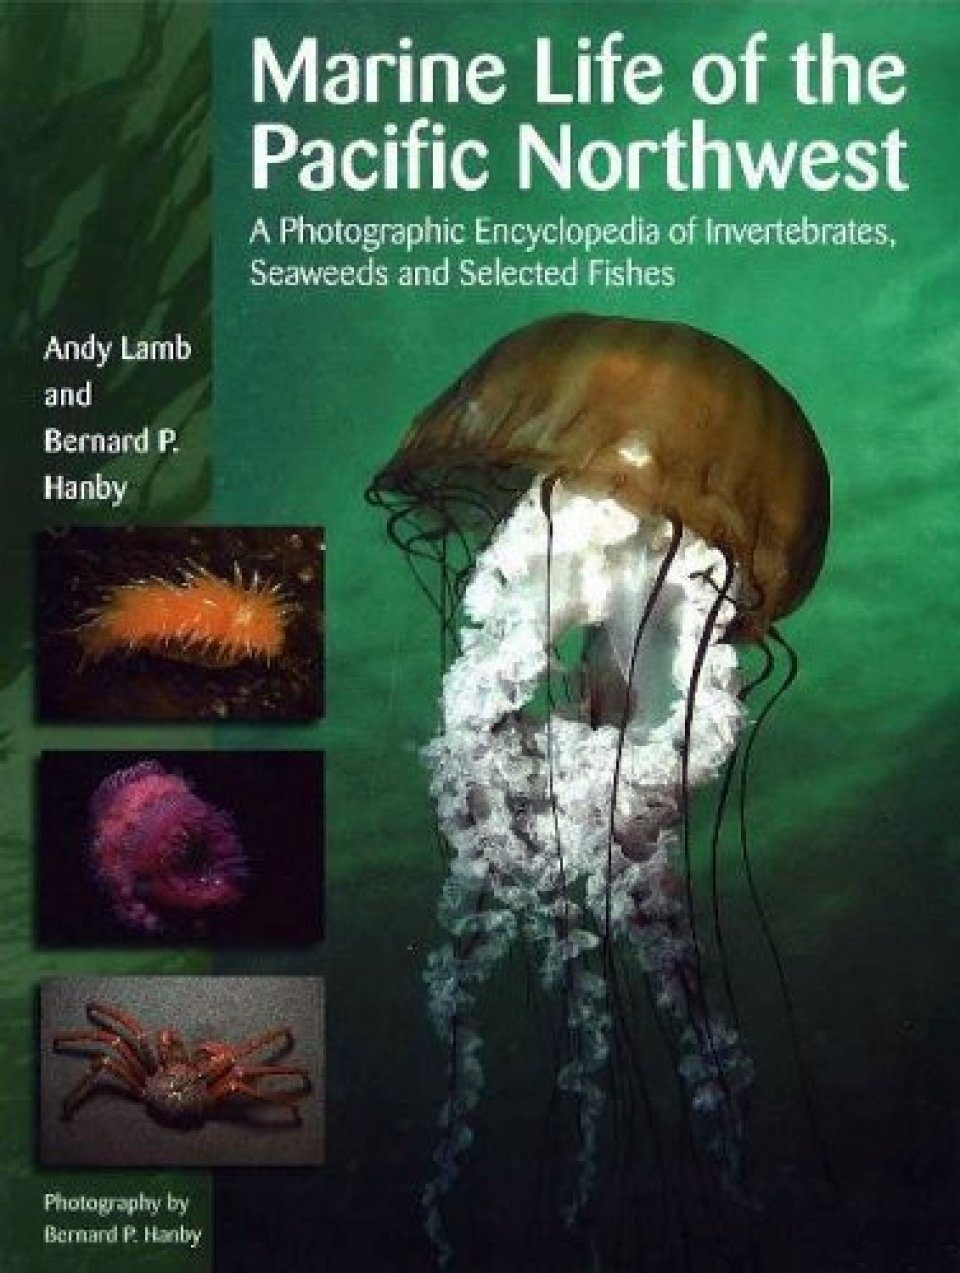 Marine Life of the Pacific Northwest